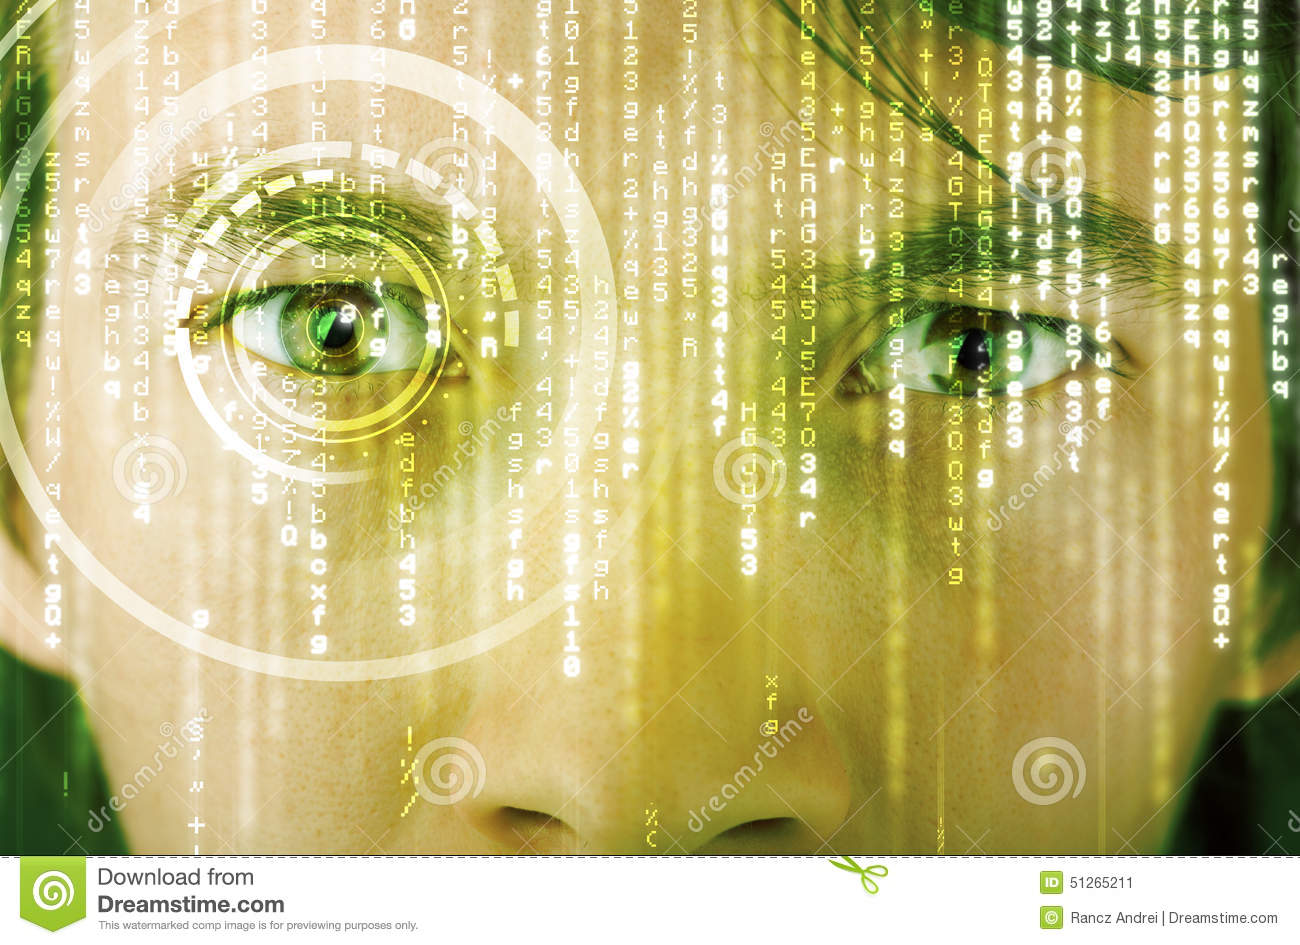 hight resolution of modern cyber soldier with target matrix eye